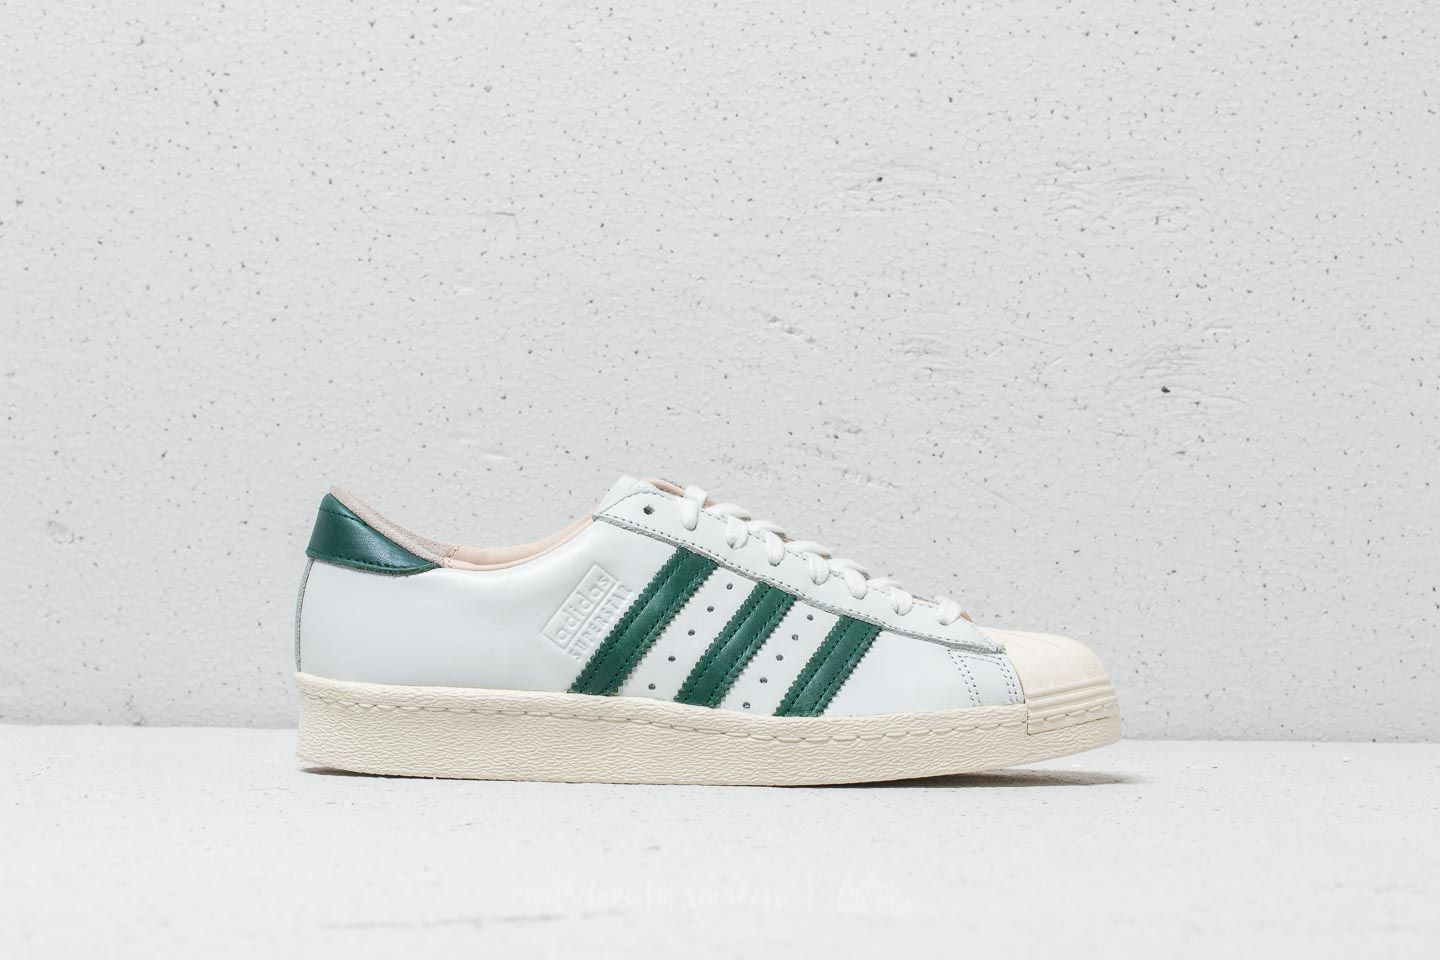 8f30c0612ac adidas Superstar 80s Recon Crystal White  Collegiate Green  Off White at a great  price